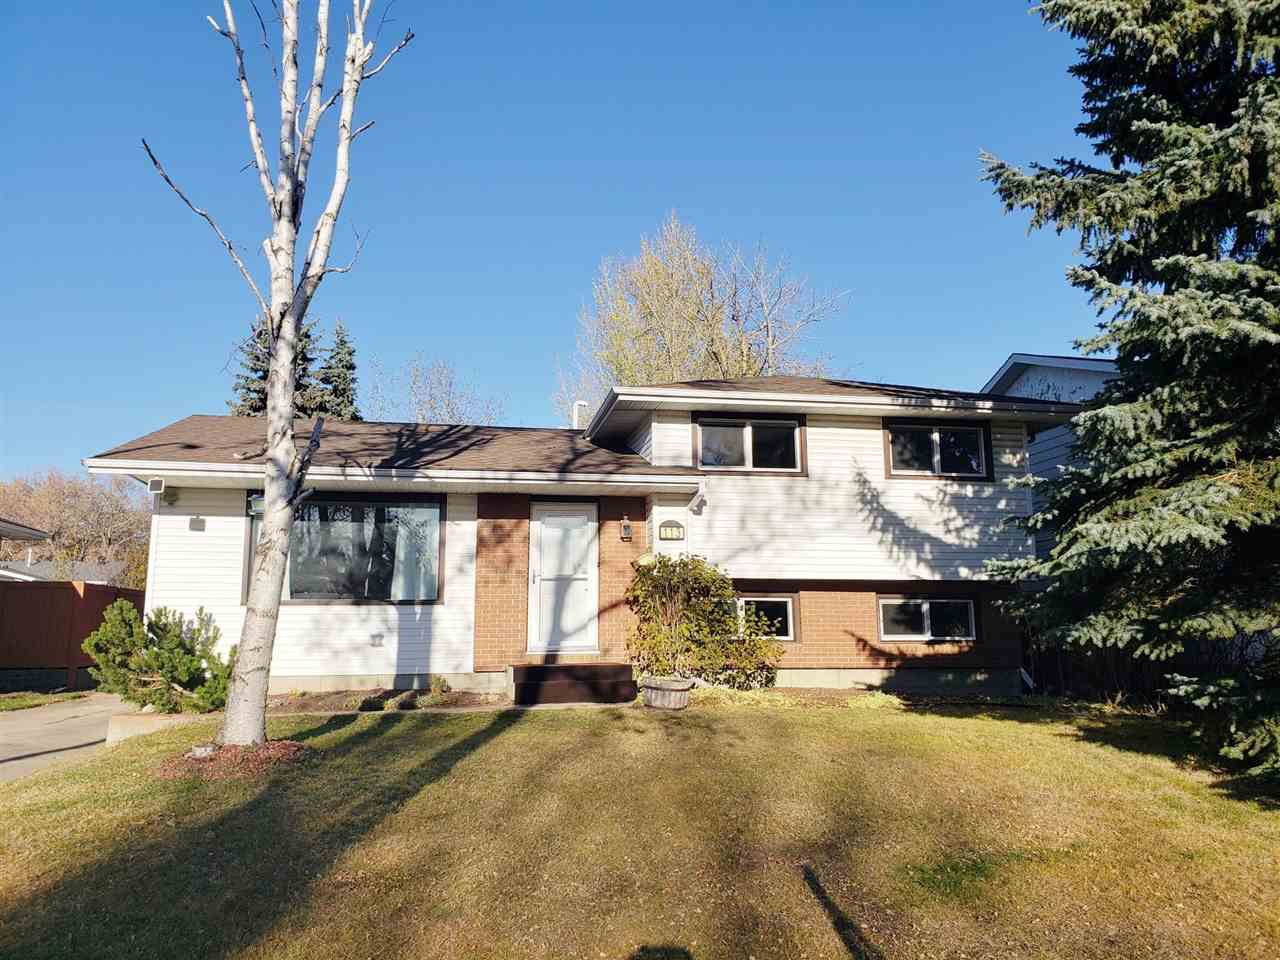 Main Photo: 113 Main Boulevard: Sherwood Park House for sale : MLS®# E4131743